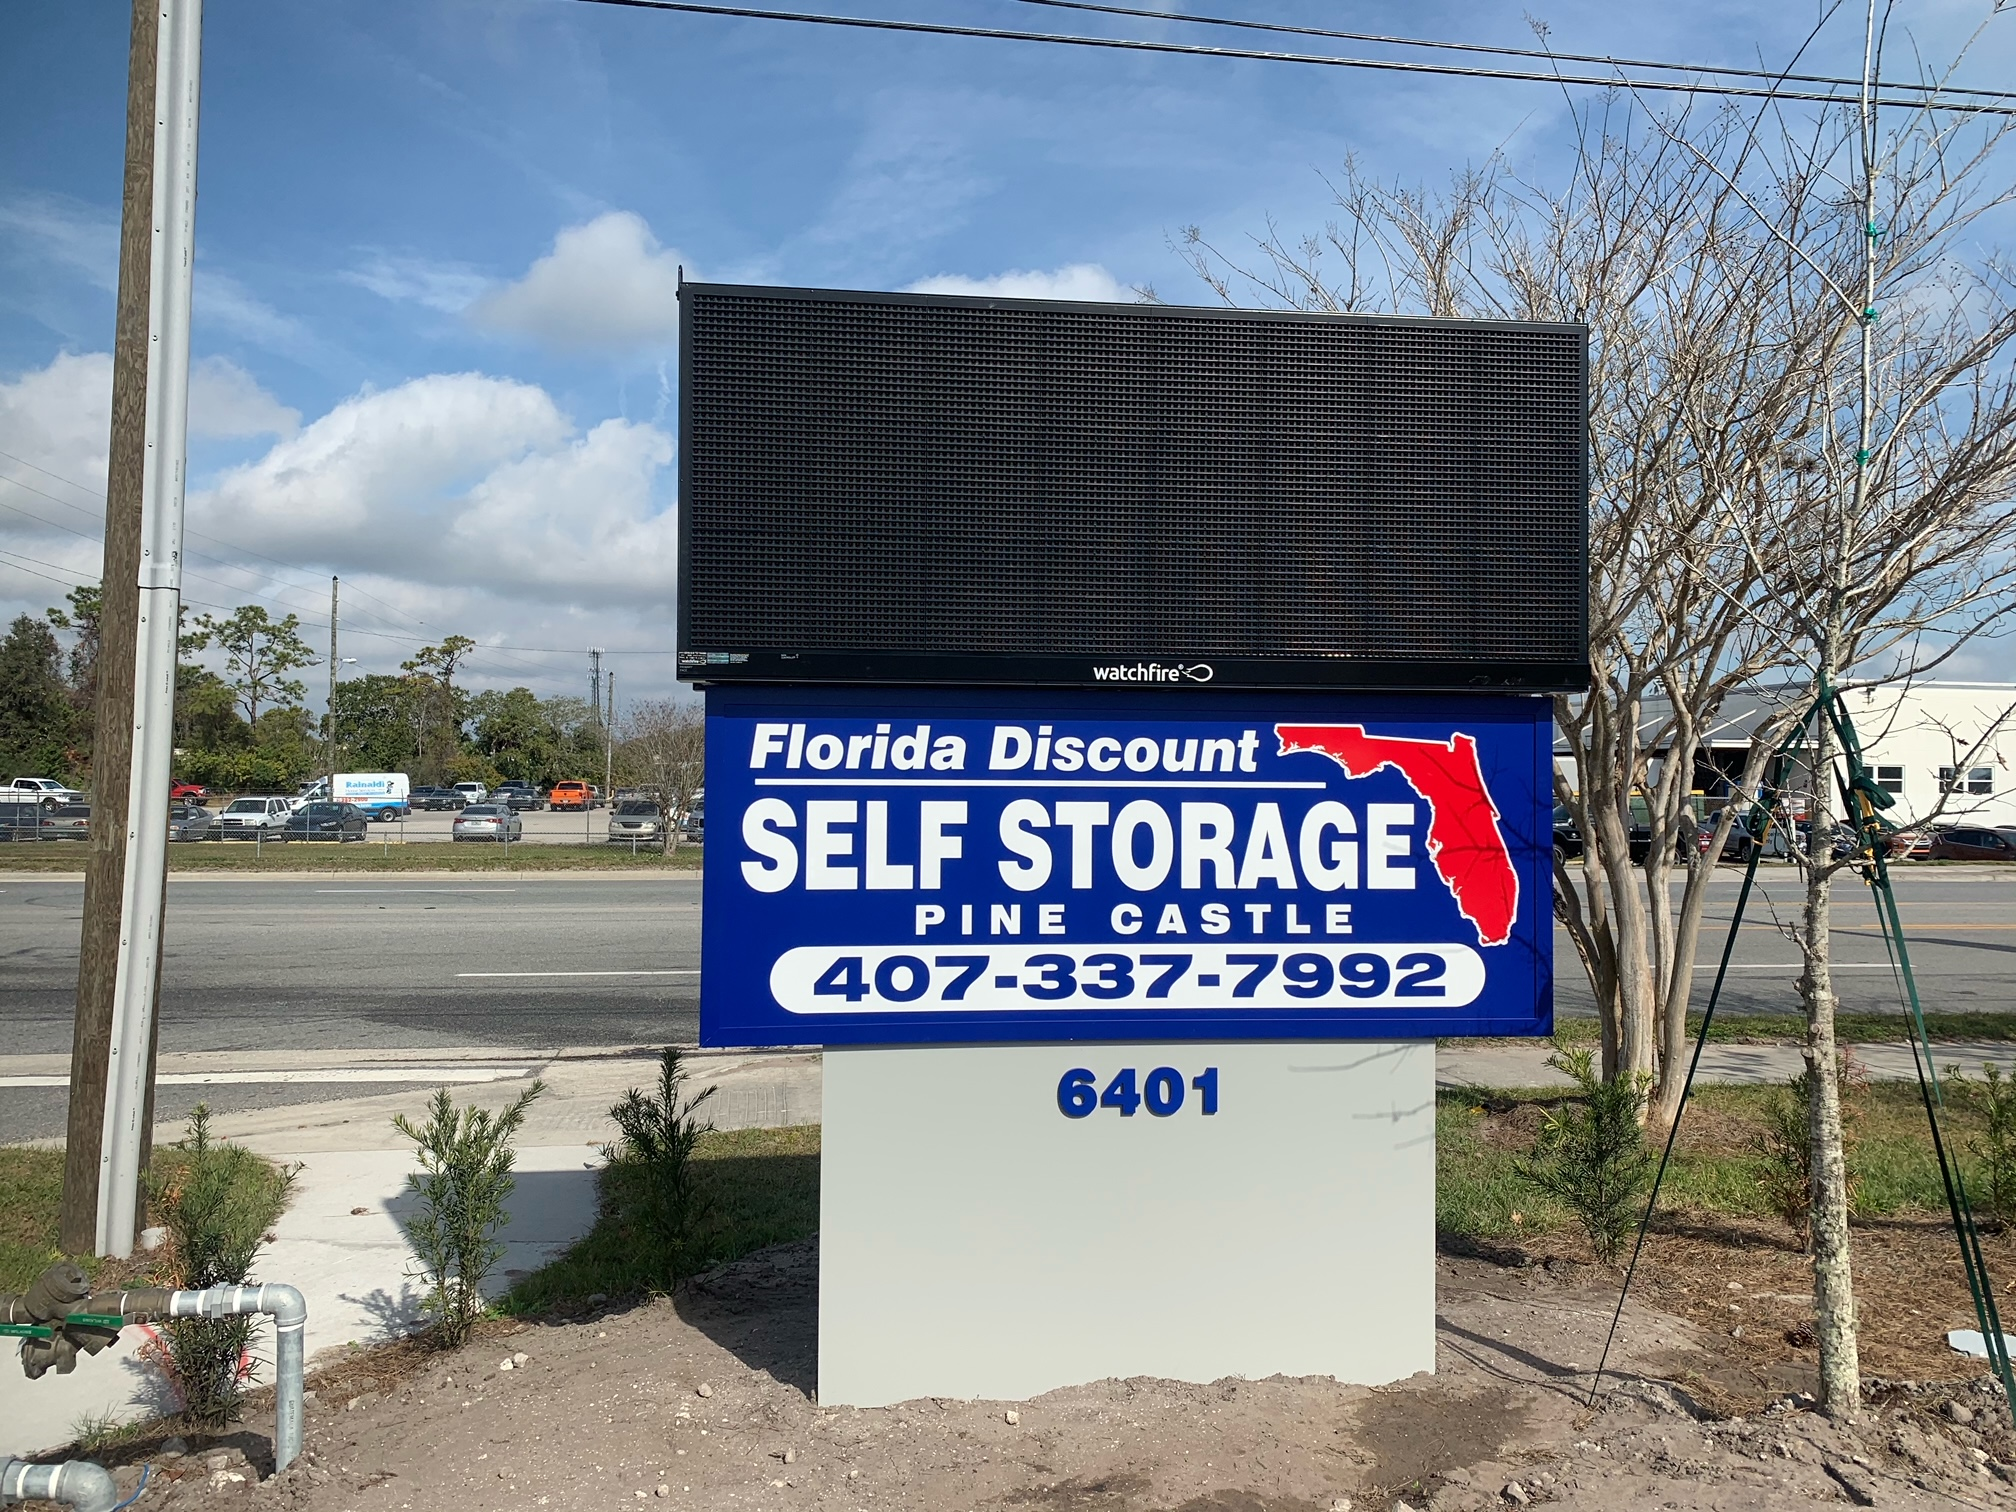 Florida Discount Self Storage - Pinecastle